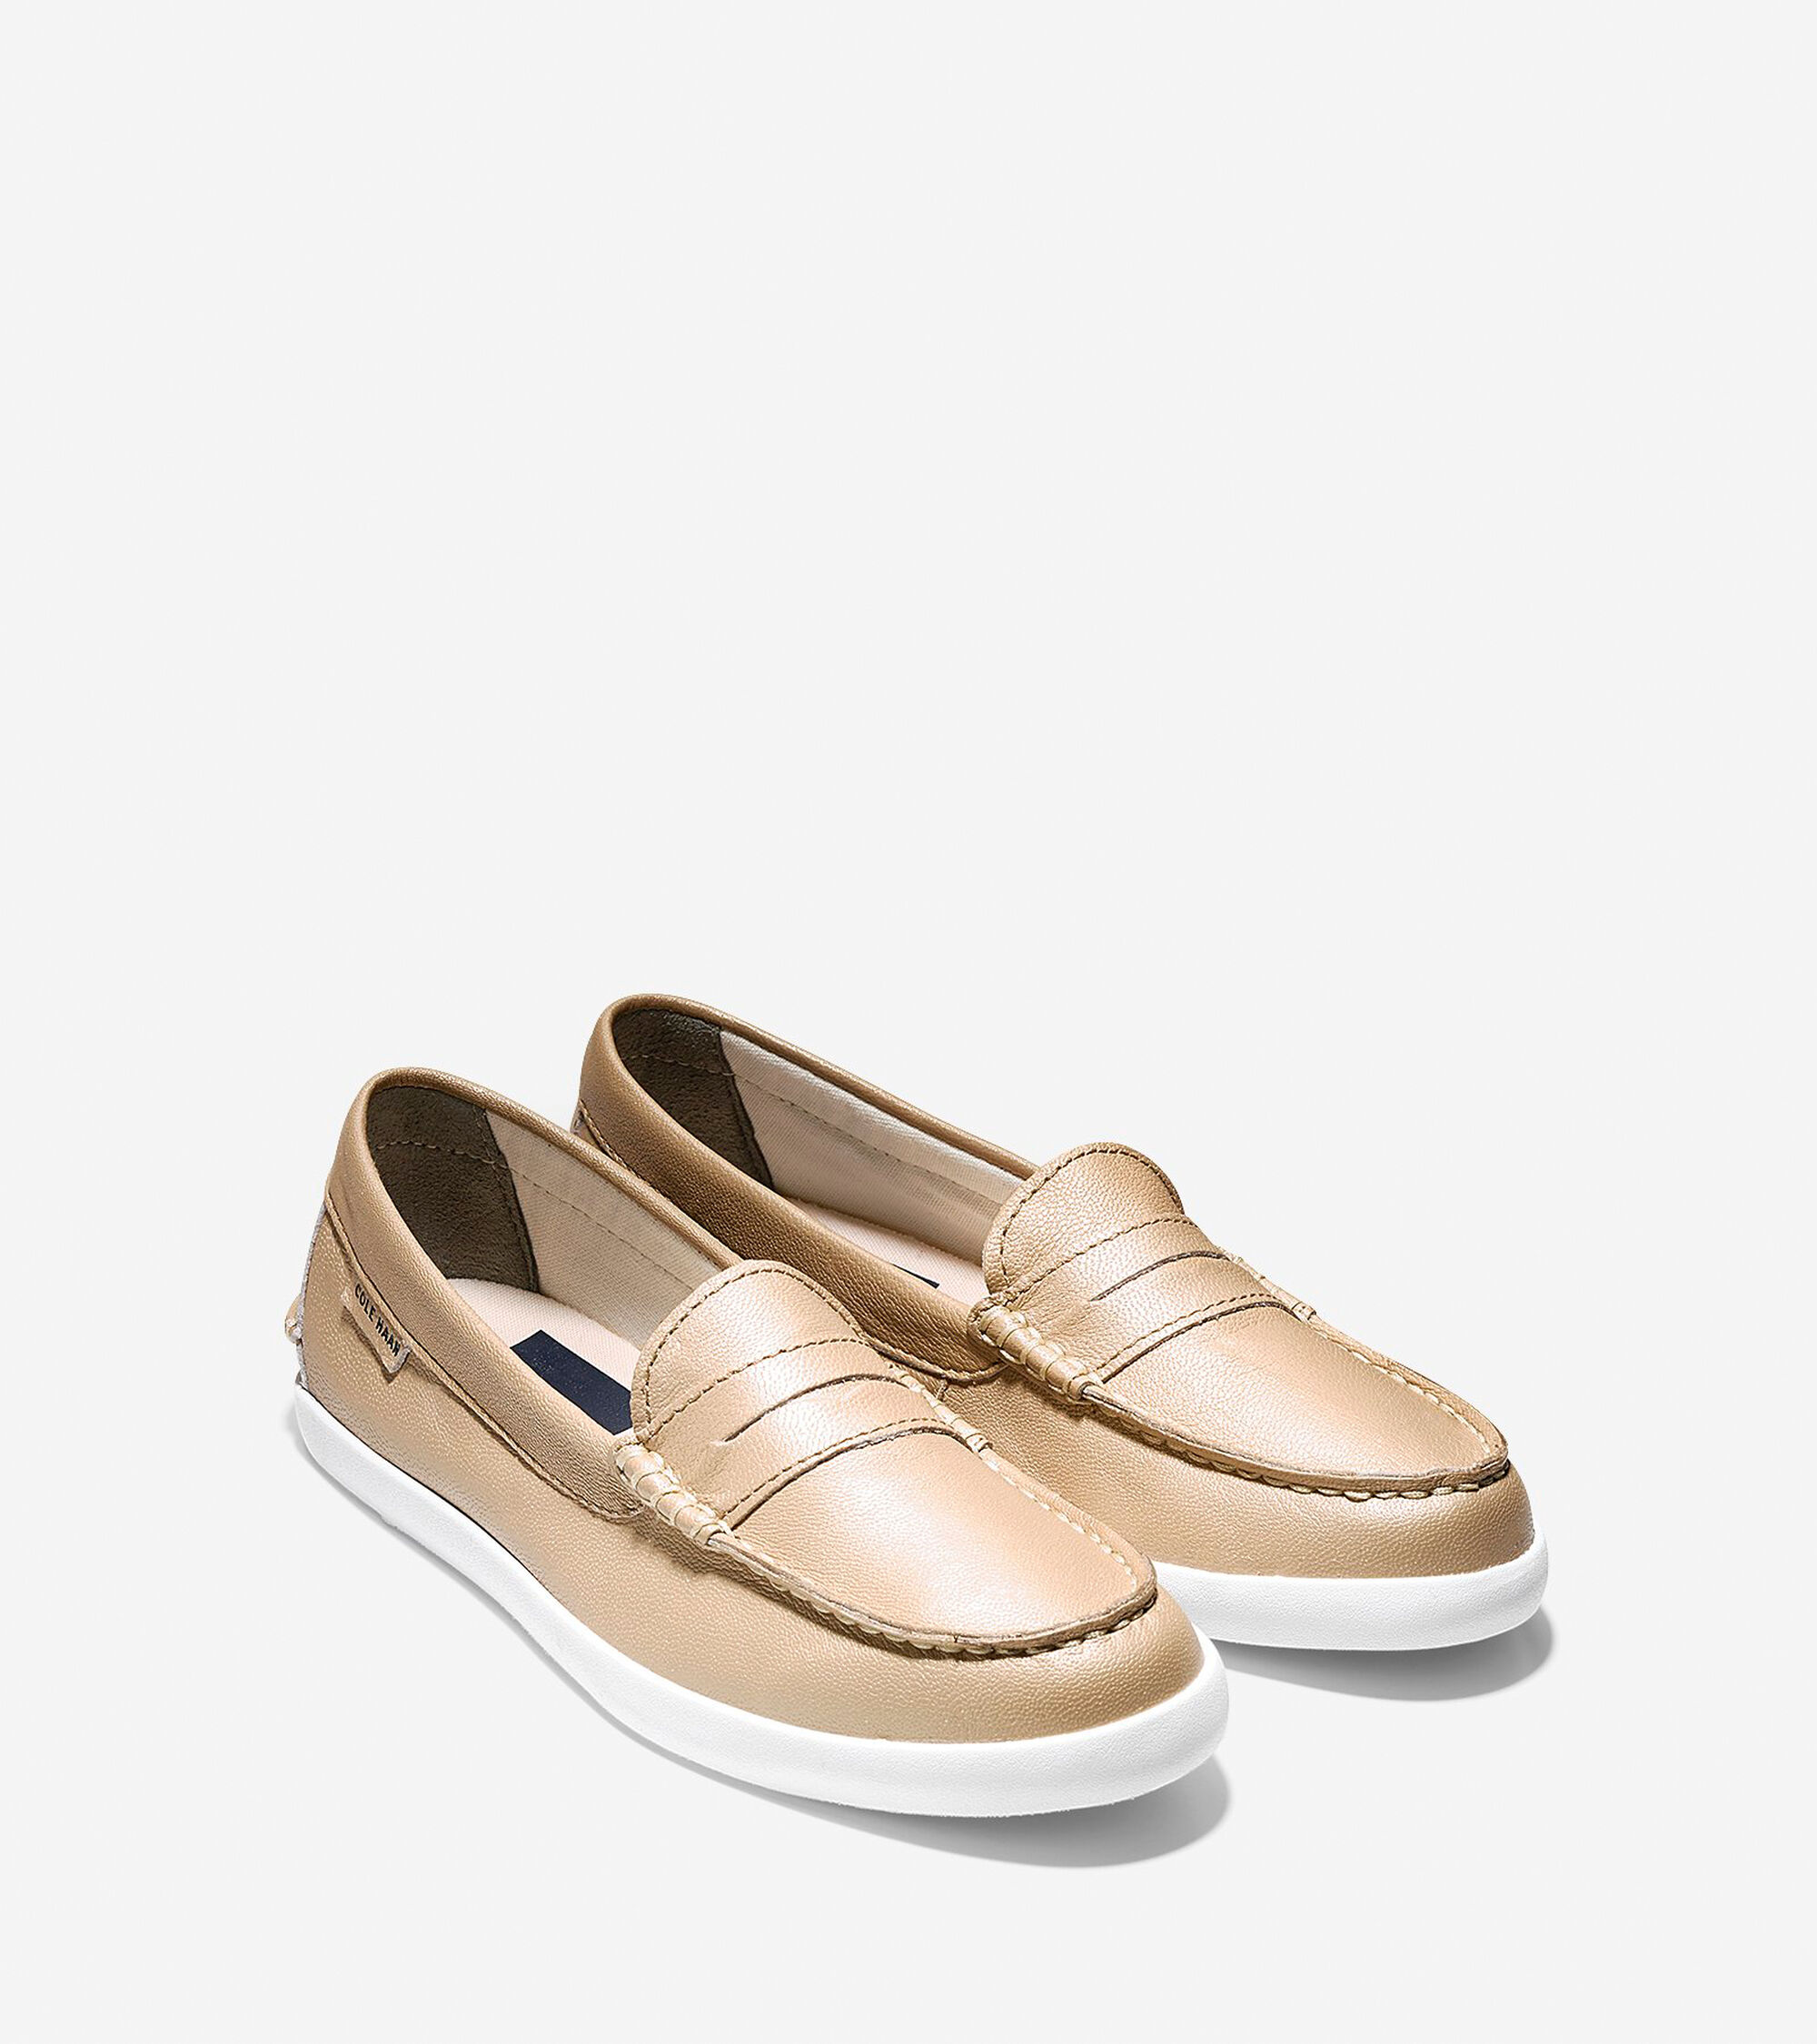 e4f11ae4c22 Women's Nantucket Loafers in Soft Gold Metallic | Cole Haan